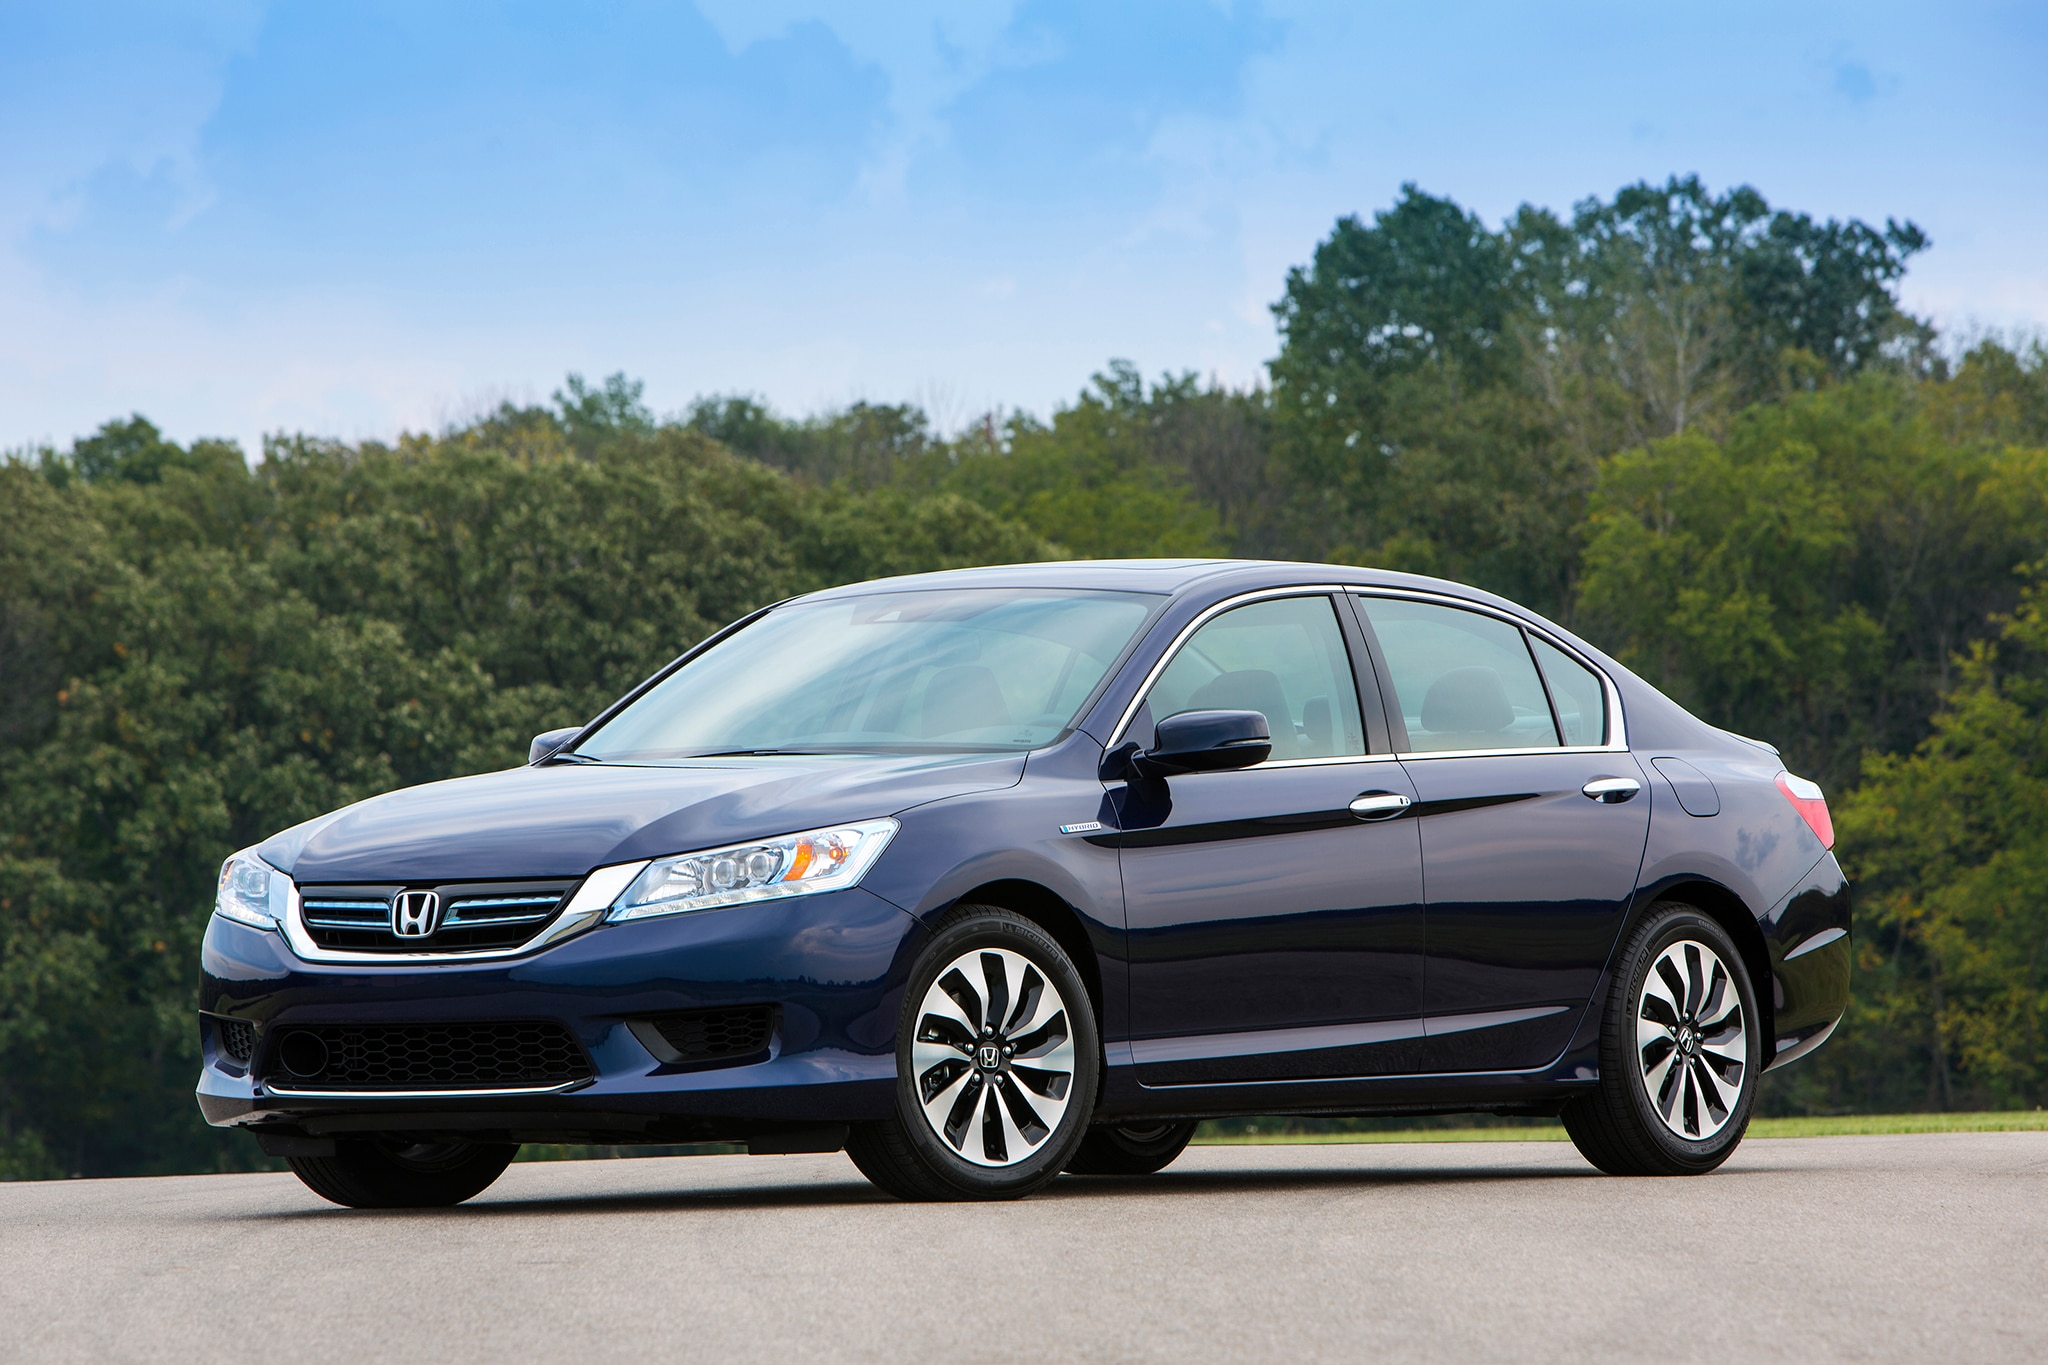 2014 honda accord hybrid first drive automobile magazine. Black Bedroom Furniture Sets. Home Design Ideas